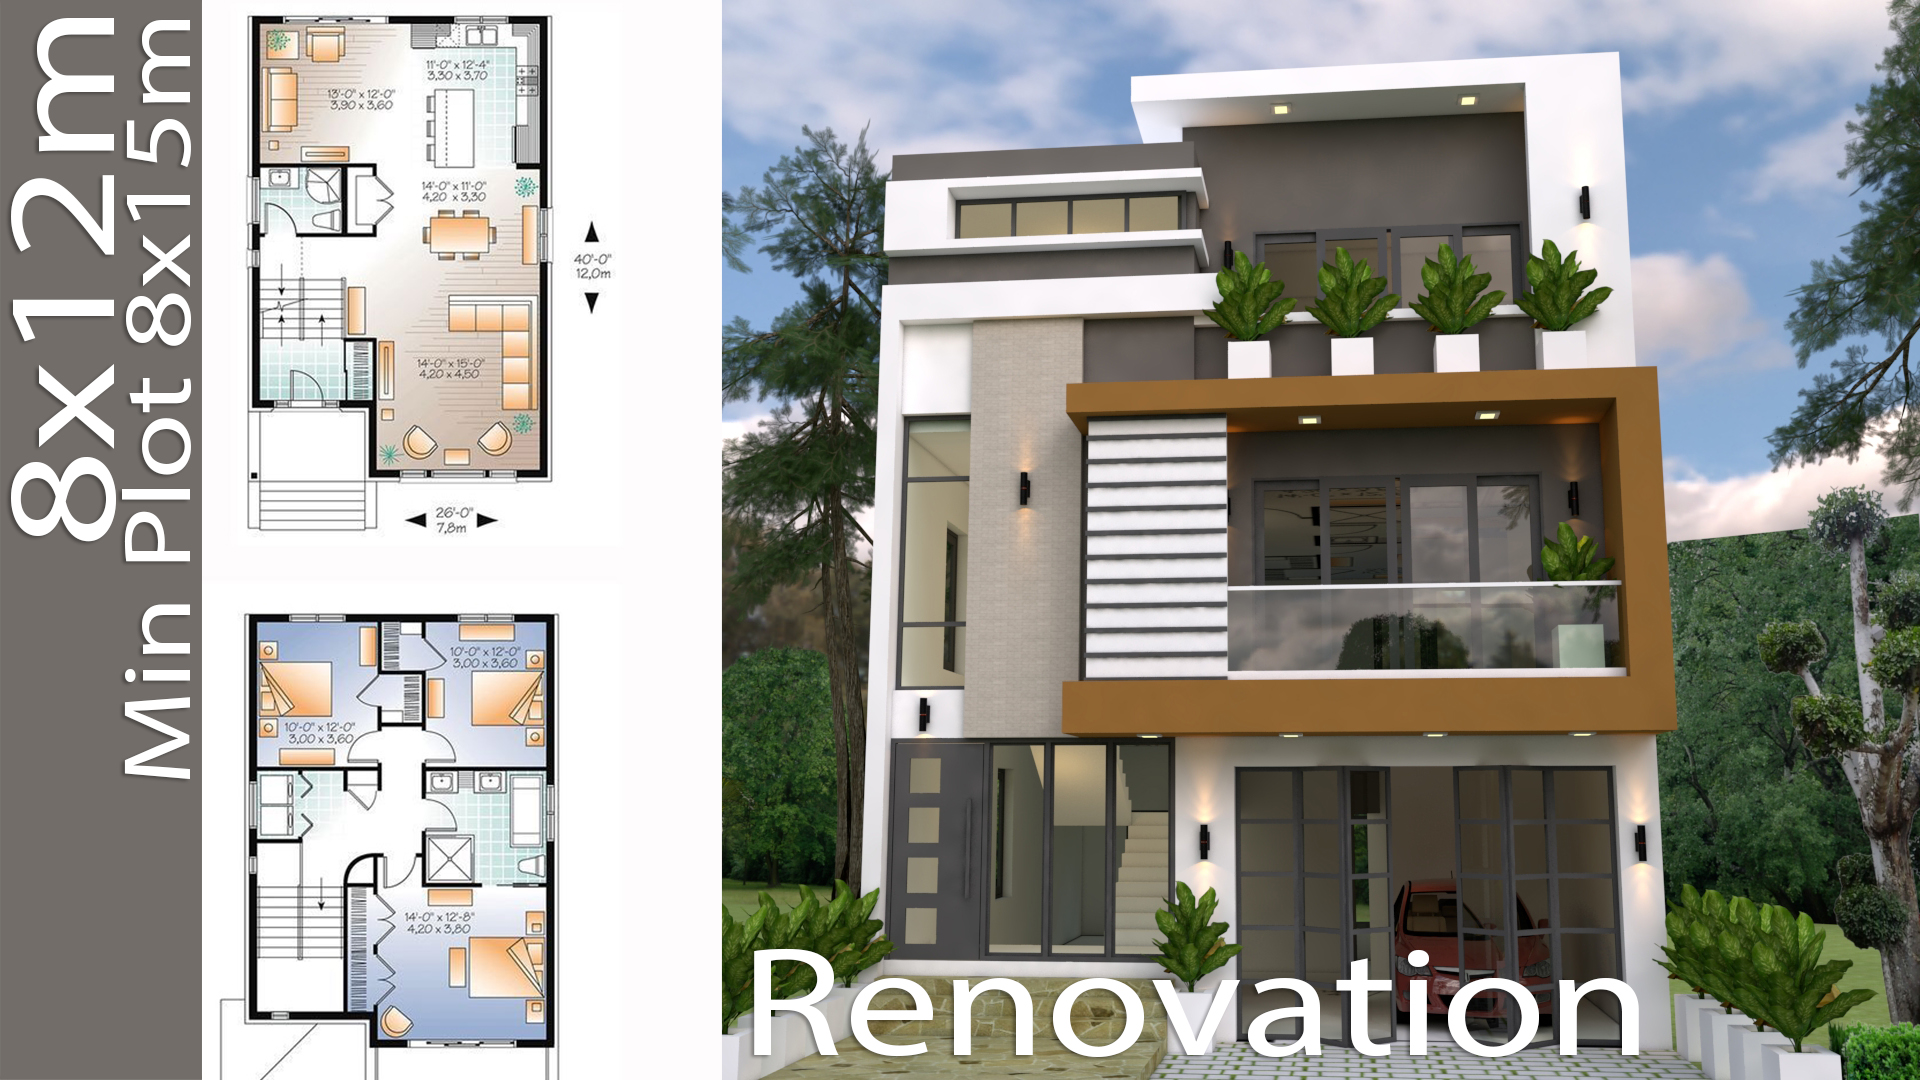 Renovation home design plan 8x12m this villa is modeling by sam architect with three stories level its has 3 bedrooms